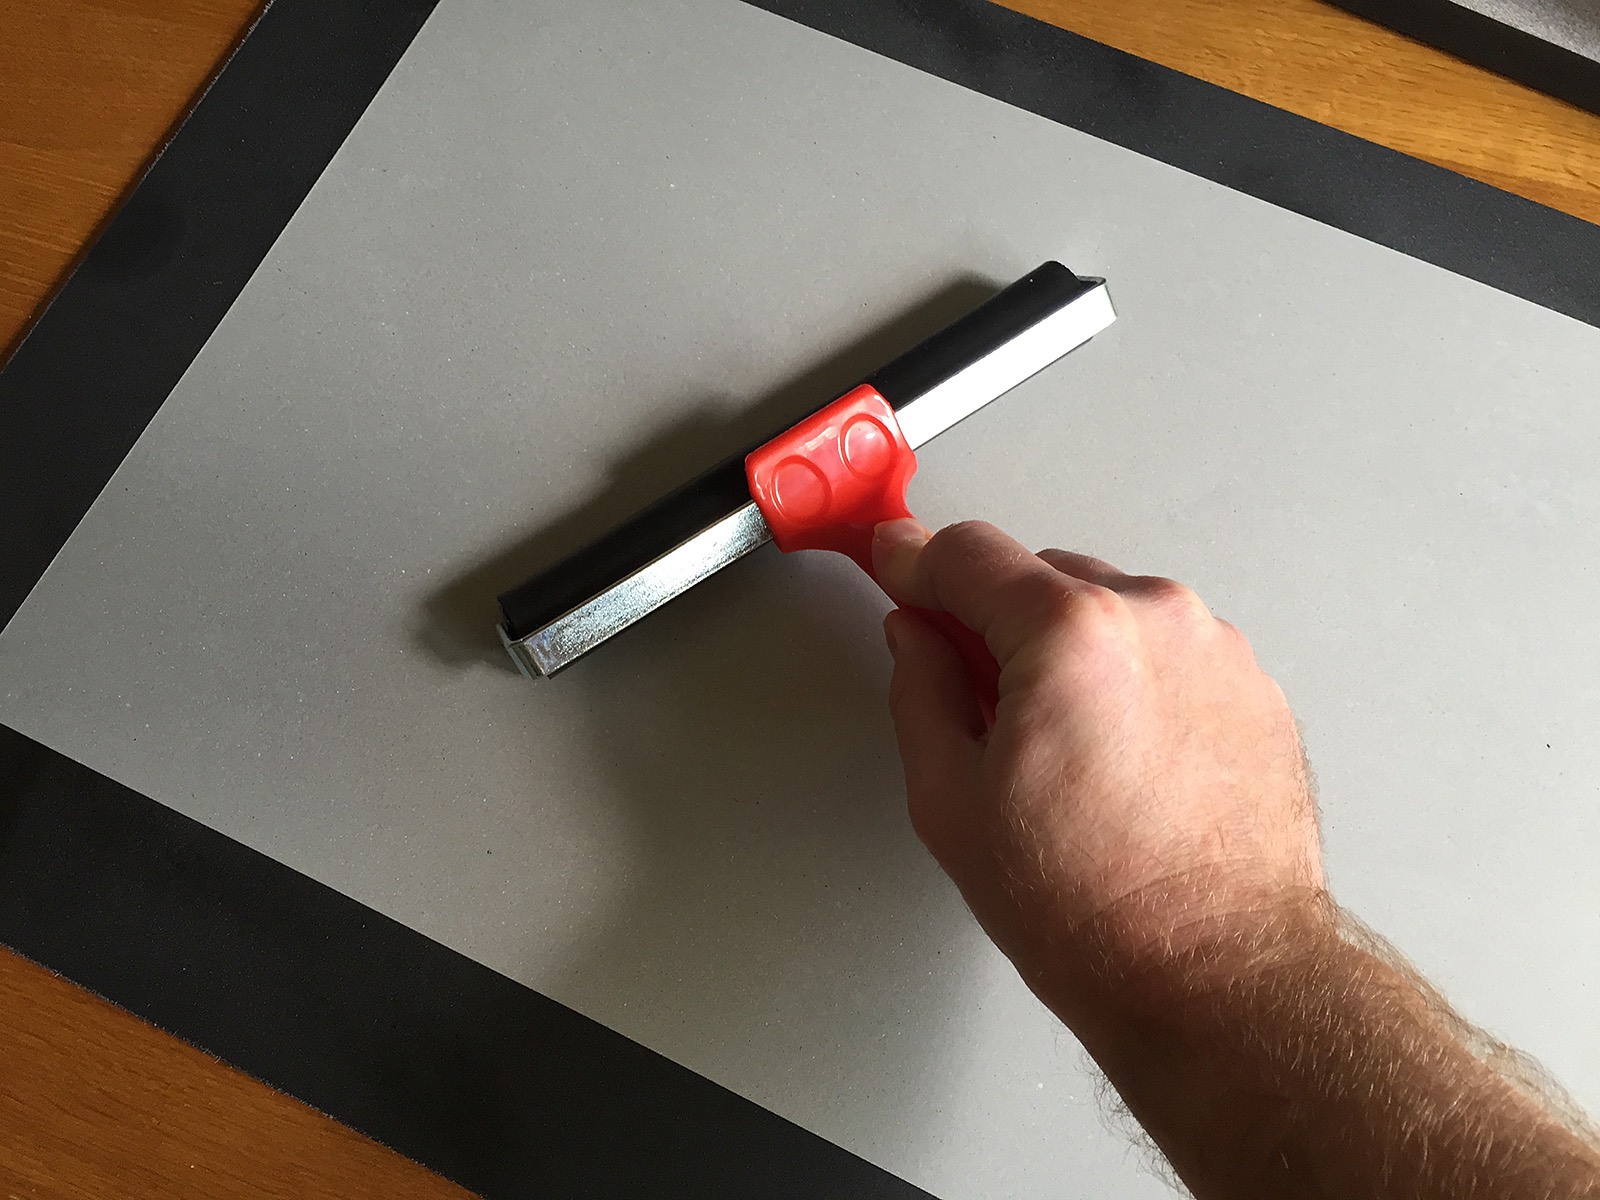 Cover the image with a protective sheet and the use a roller to press the image to the glued surface.